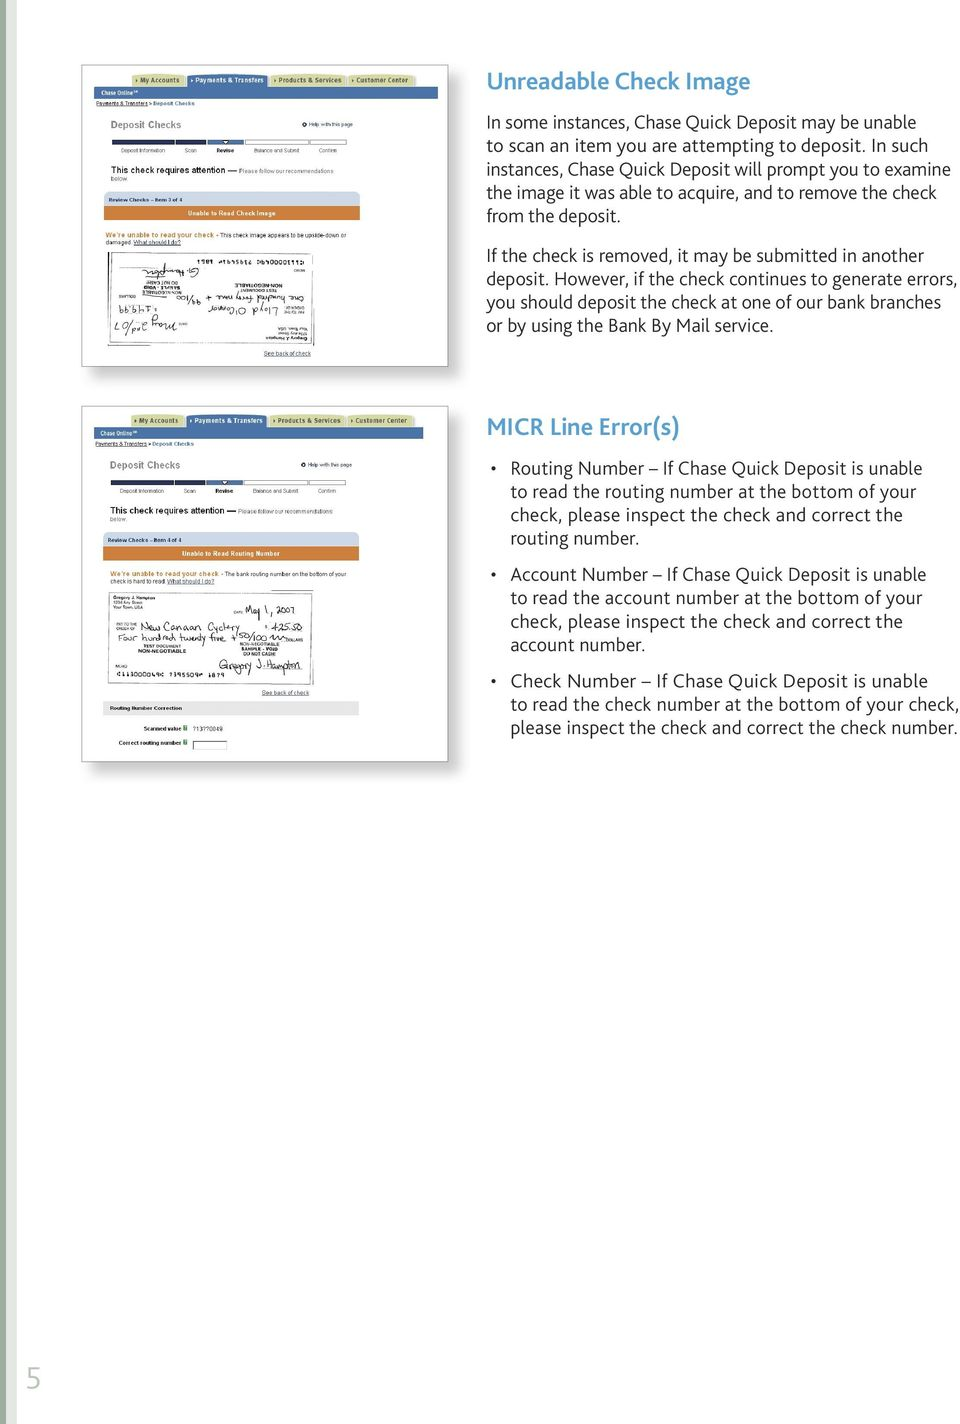 chase quick deposit. check scanning guide - pdf